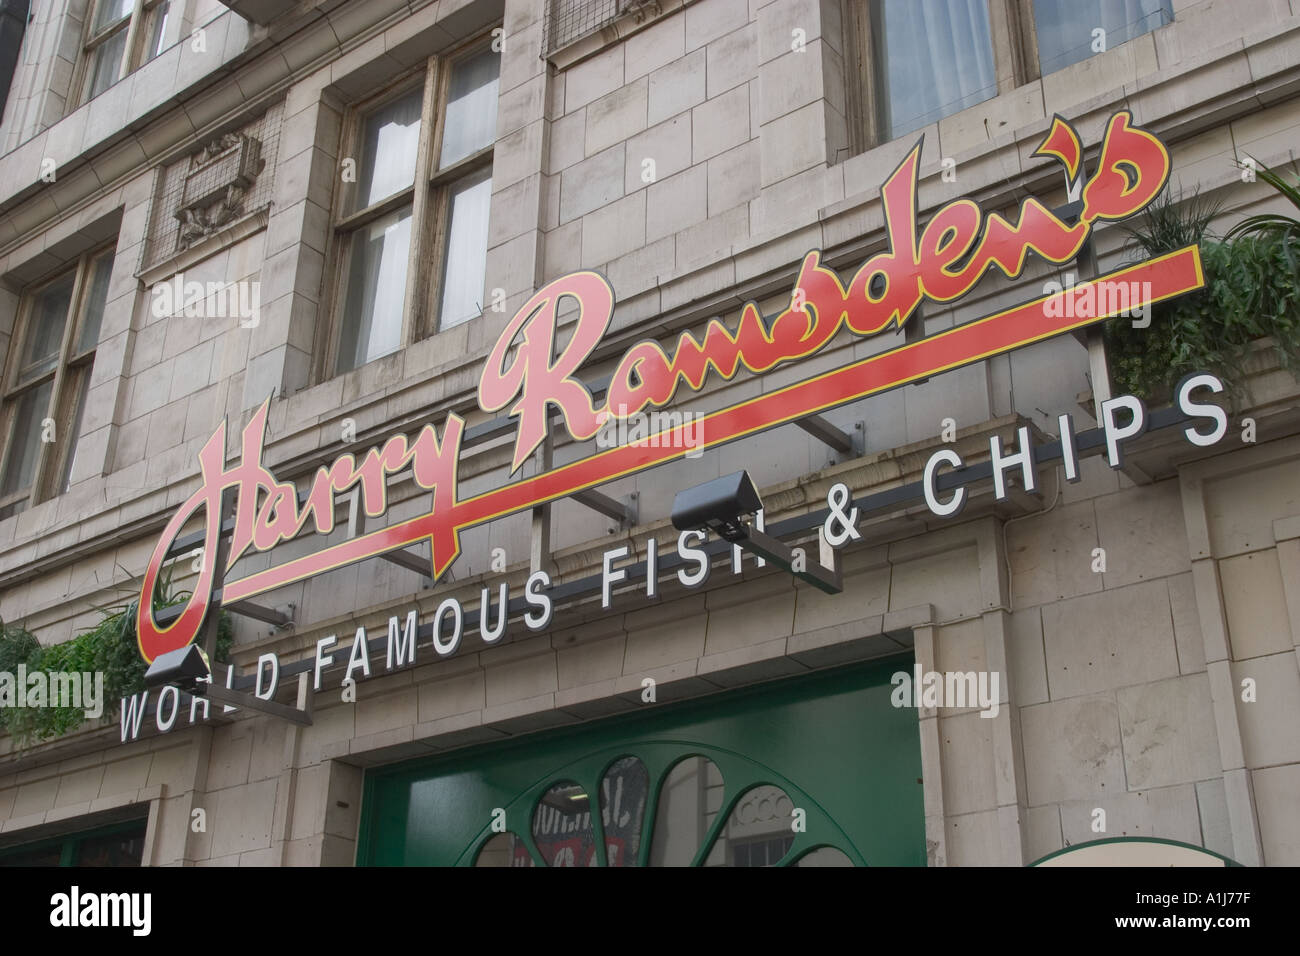 Harry Ramsden famous fish and chips sign in Soho London UK Stock Photo